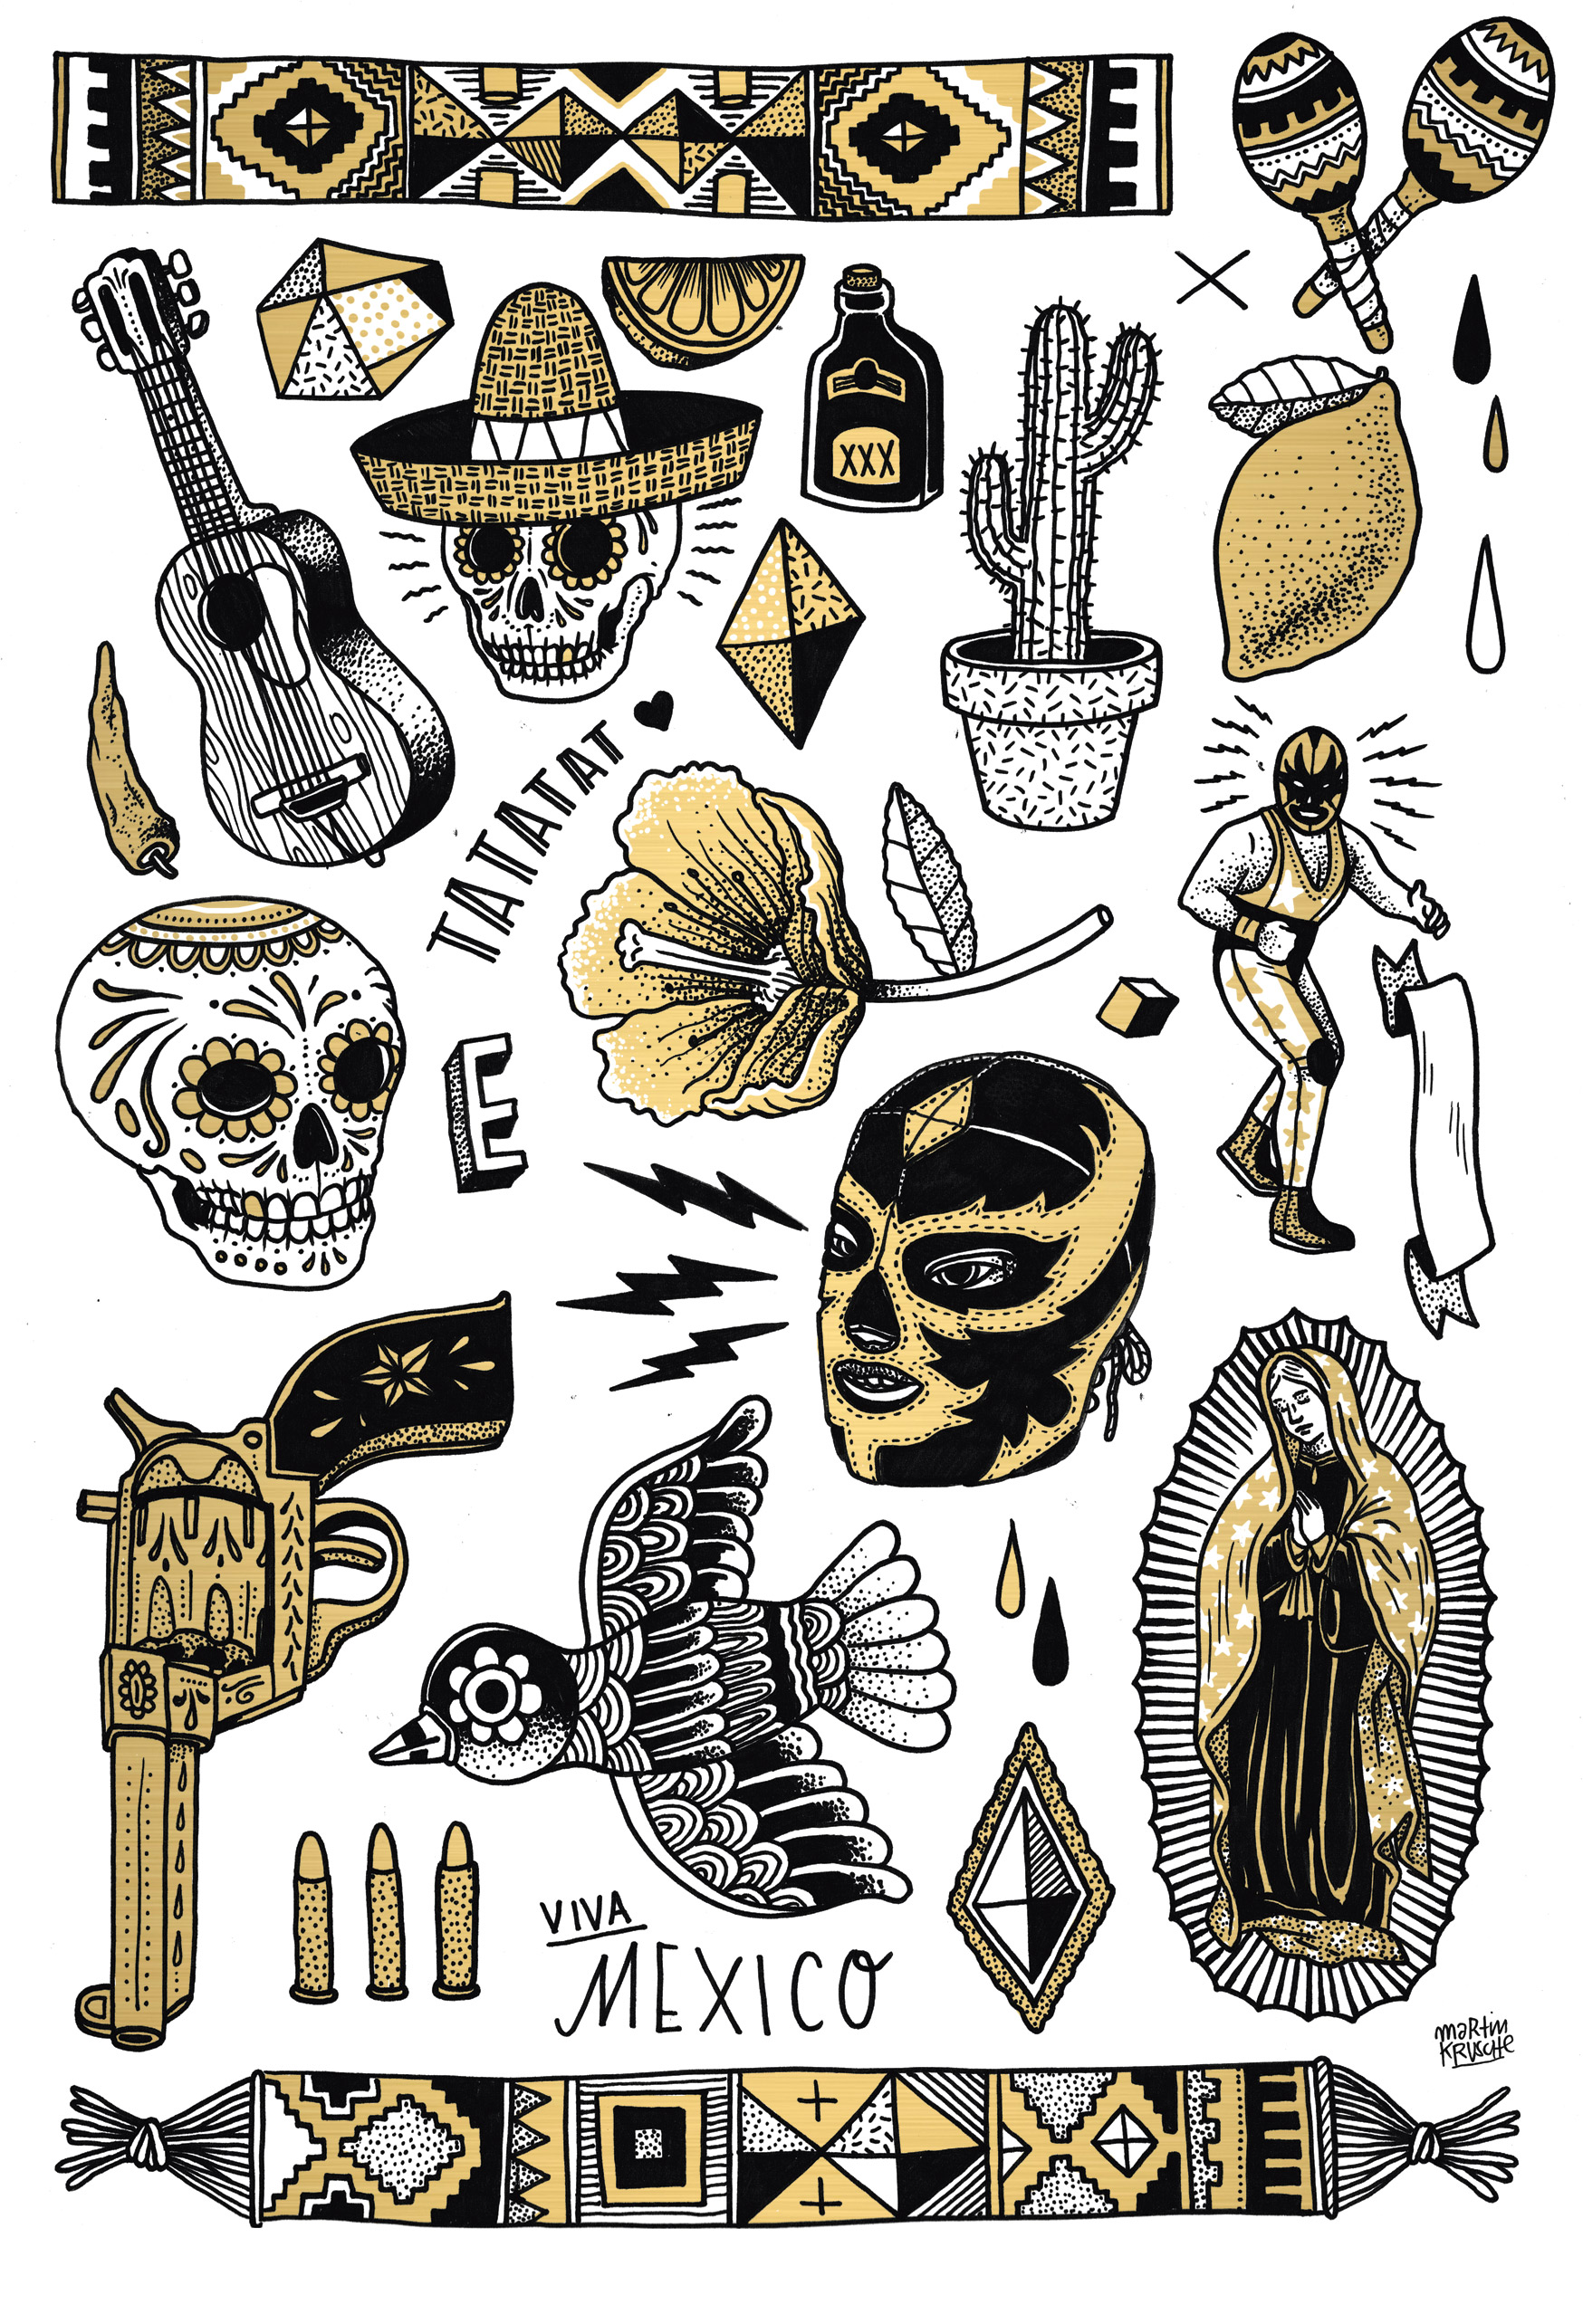 dia de los muertos mexican temorary tattoo illustrations